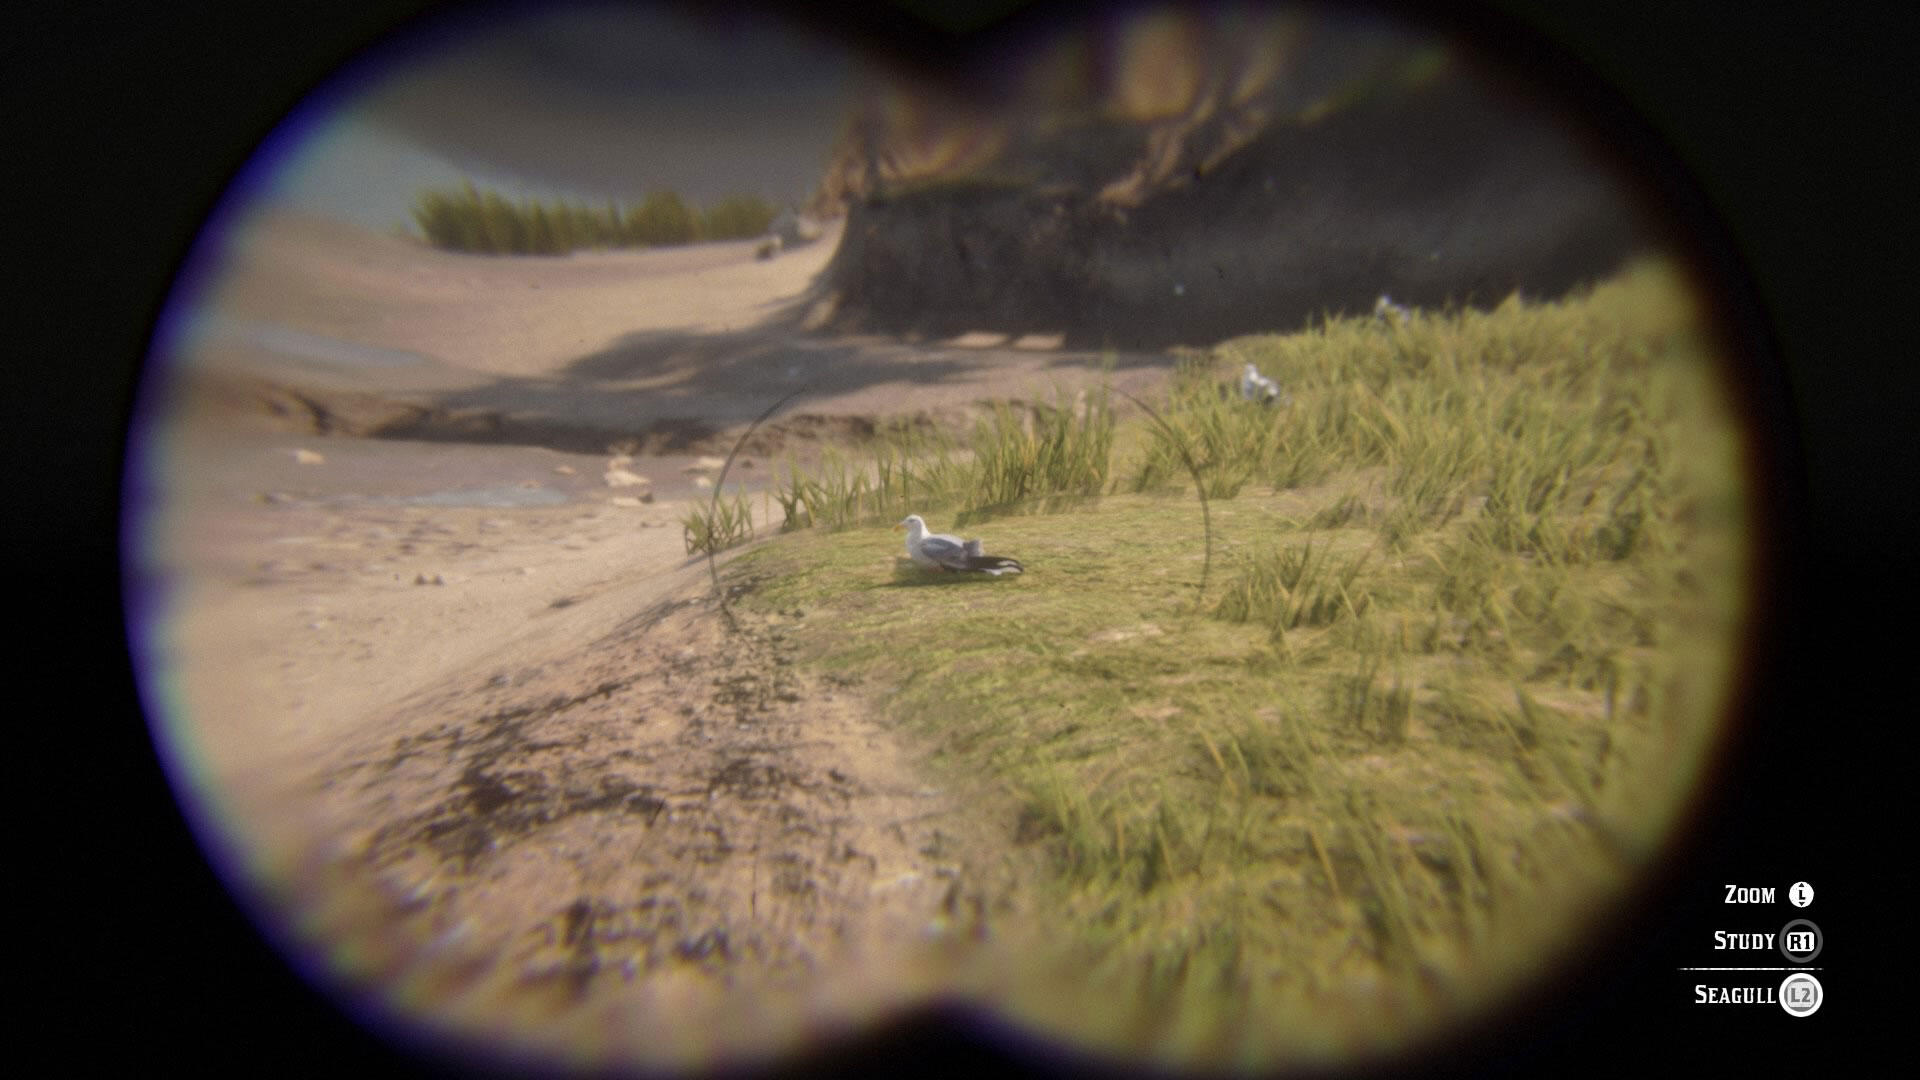 Herring Gull through Red Dead Redemption 2's in-game binoculars. Image: Courtesy of Rockstar Games